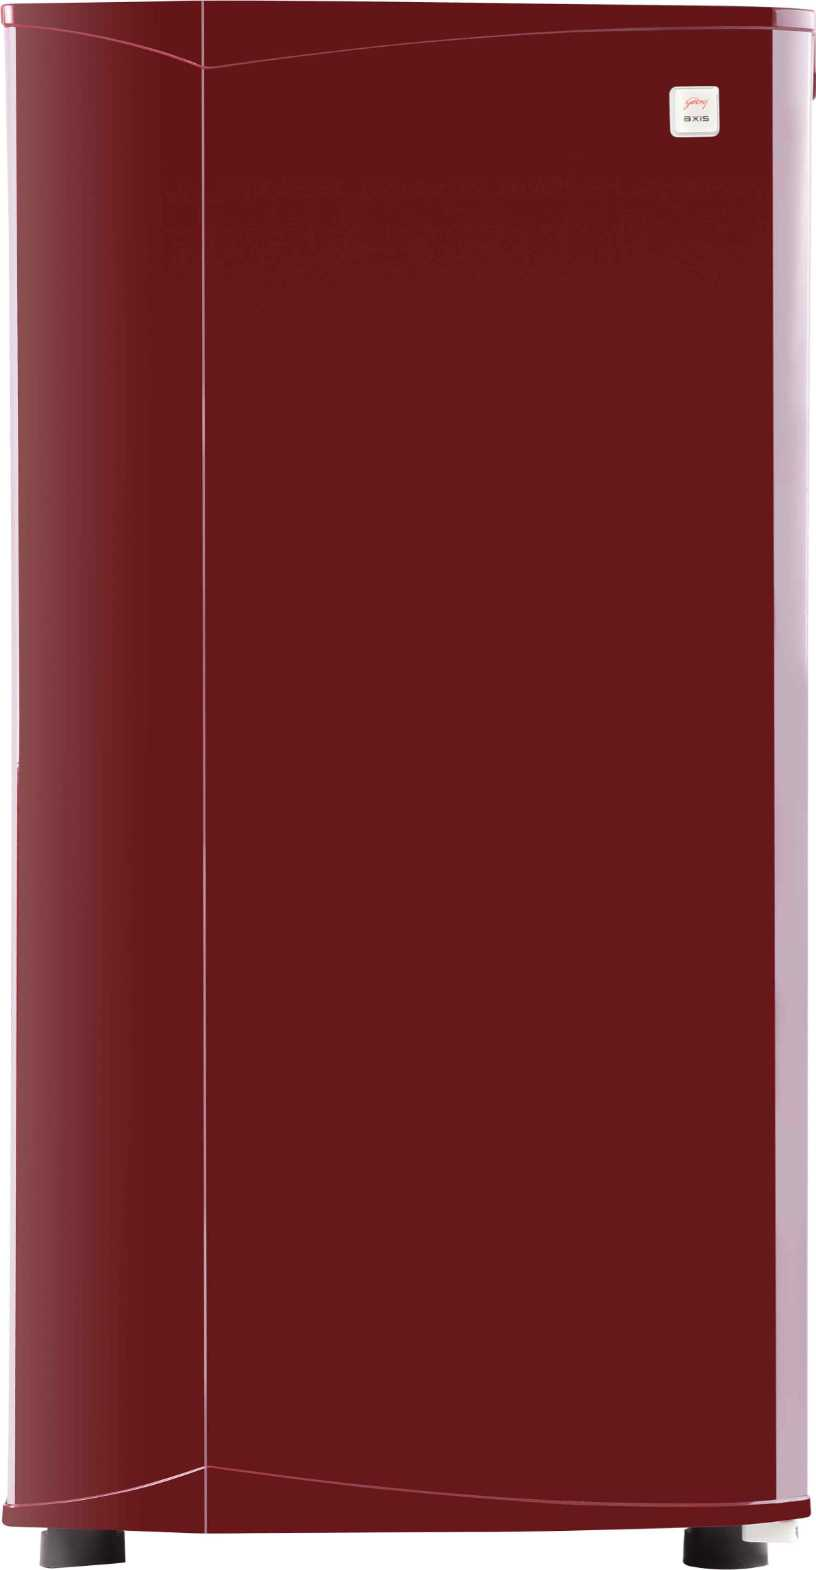 Godrej GDA 19 A1 181Litres 3S Single Door Refrigerator